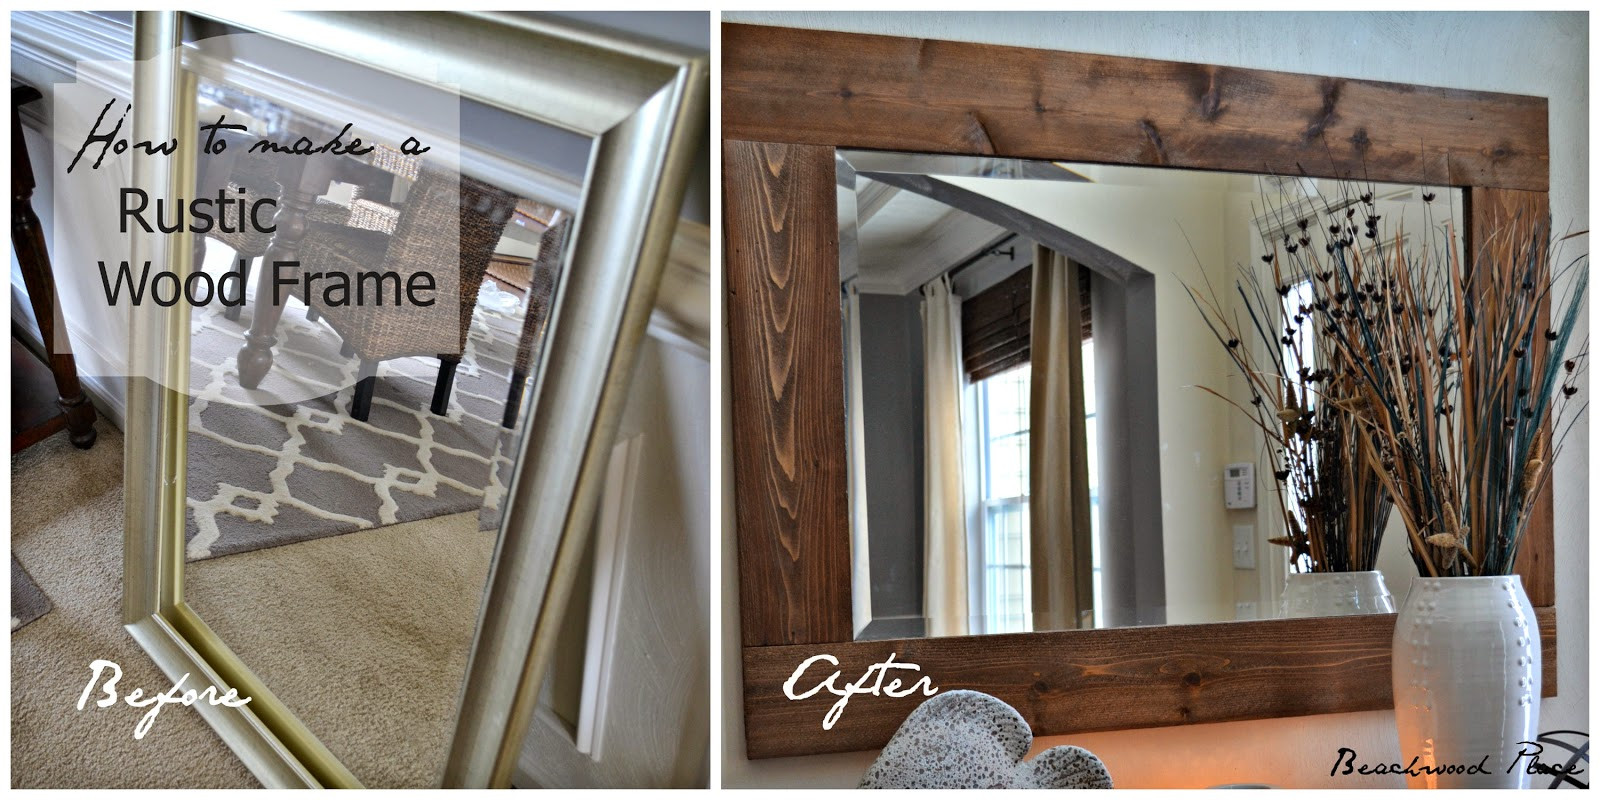 Best ideas about DIY Wood Frame . Save or Pin Beachwood Place DIY Wood Framed Mirror Now.